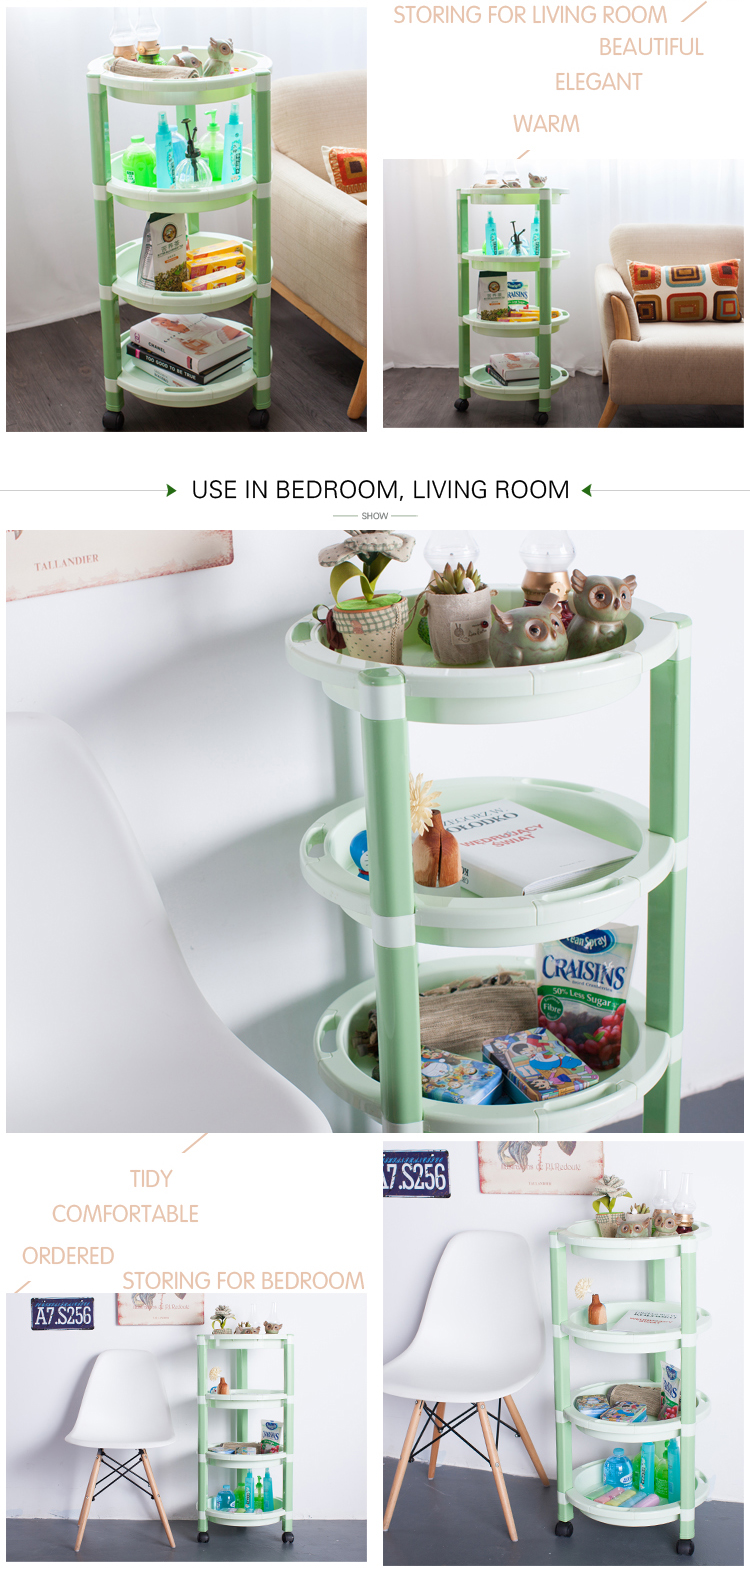 4-layer sundries bathroom corner storage rack for home